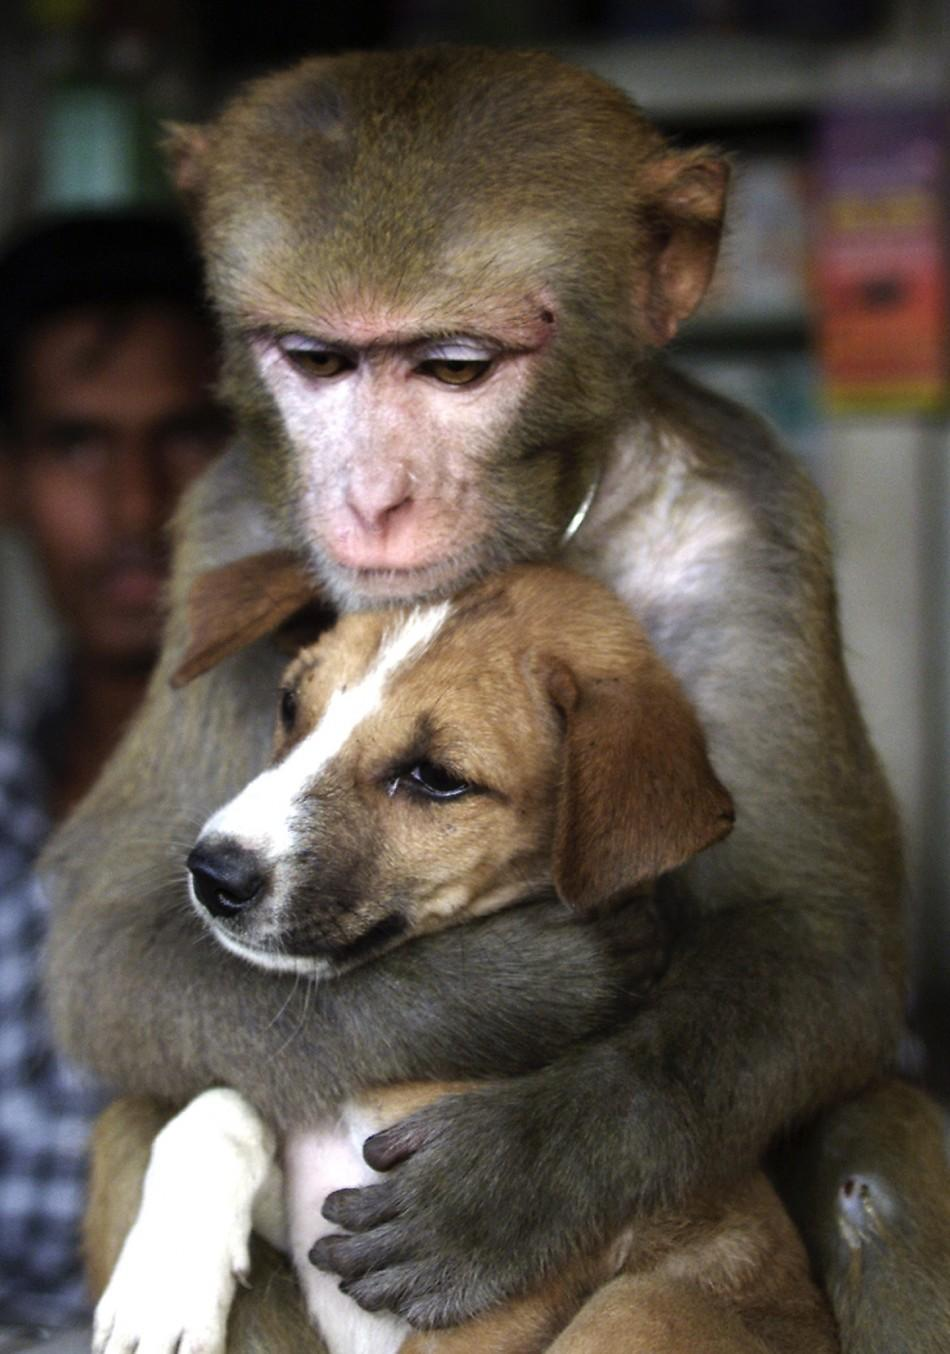 Monkey and Puppy